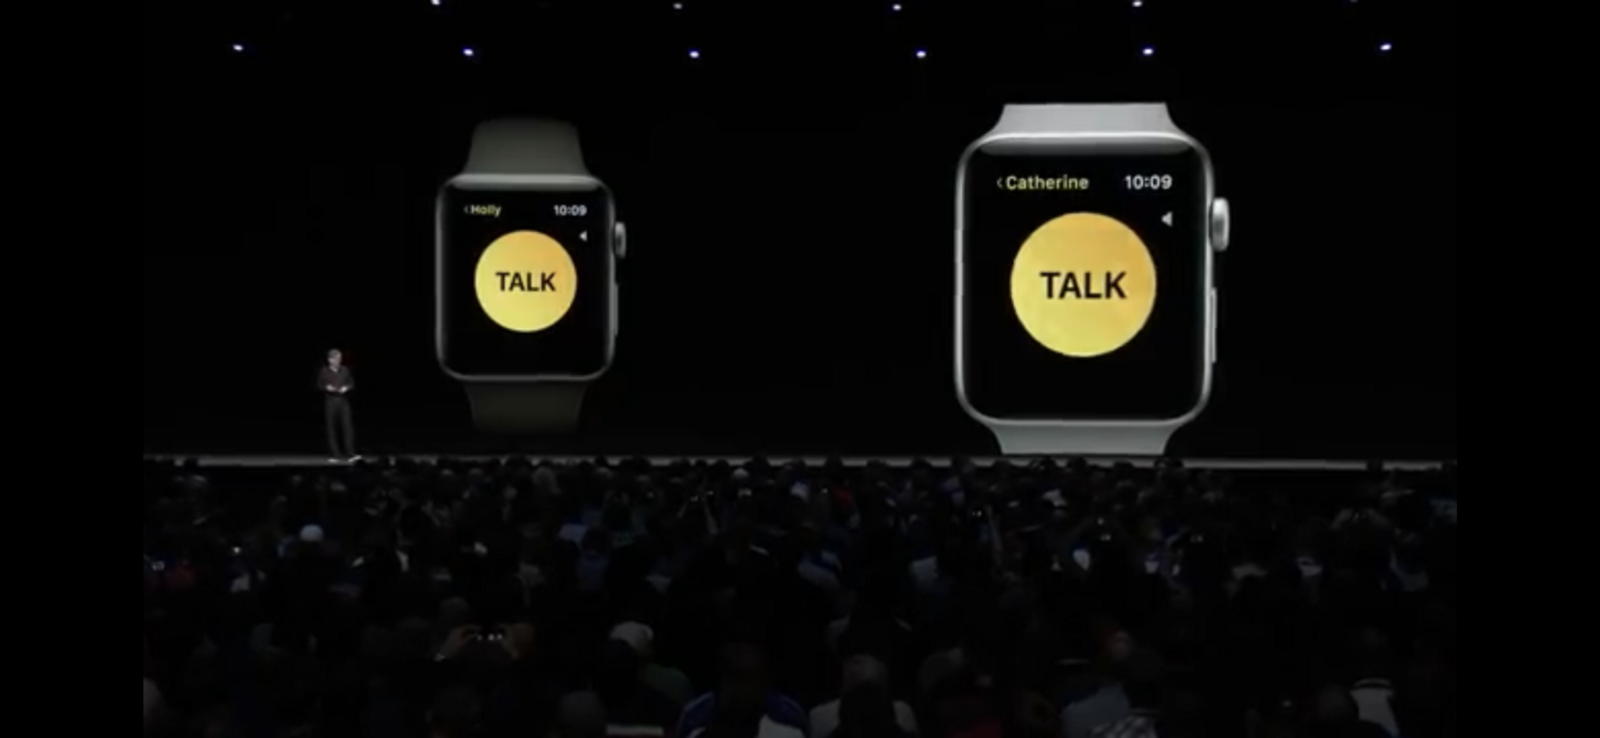 Personal Communications are still critical for Apple - By